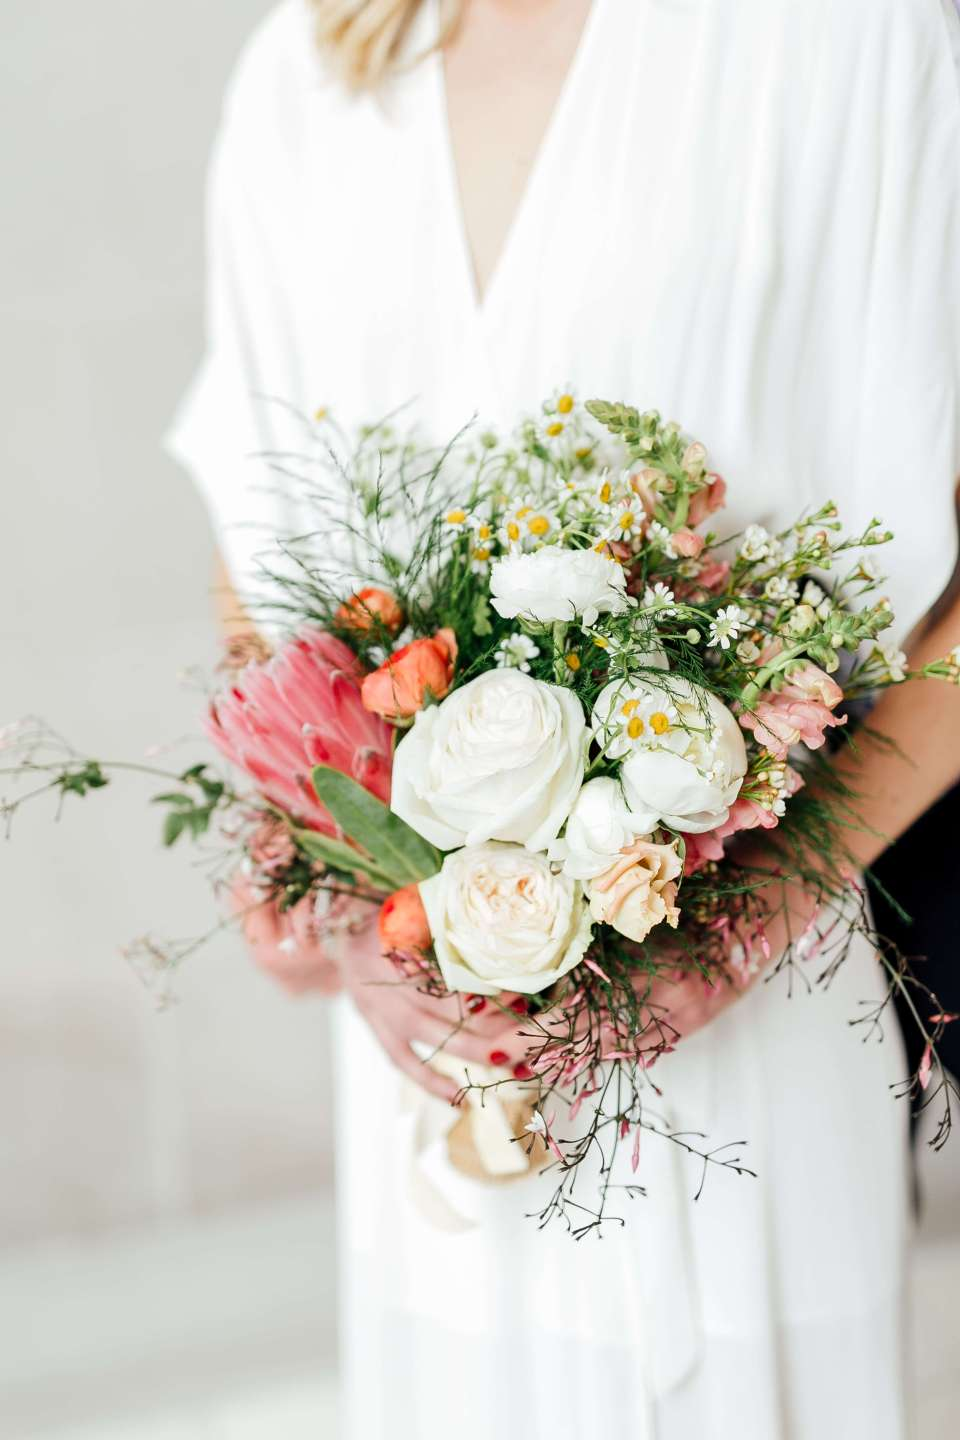 A close up of a bride holding her sustainable wedding bouquet.